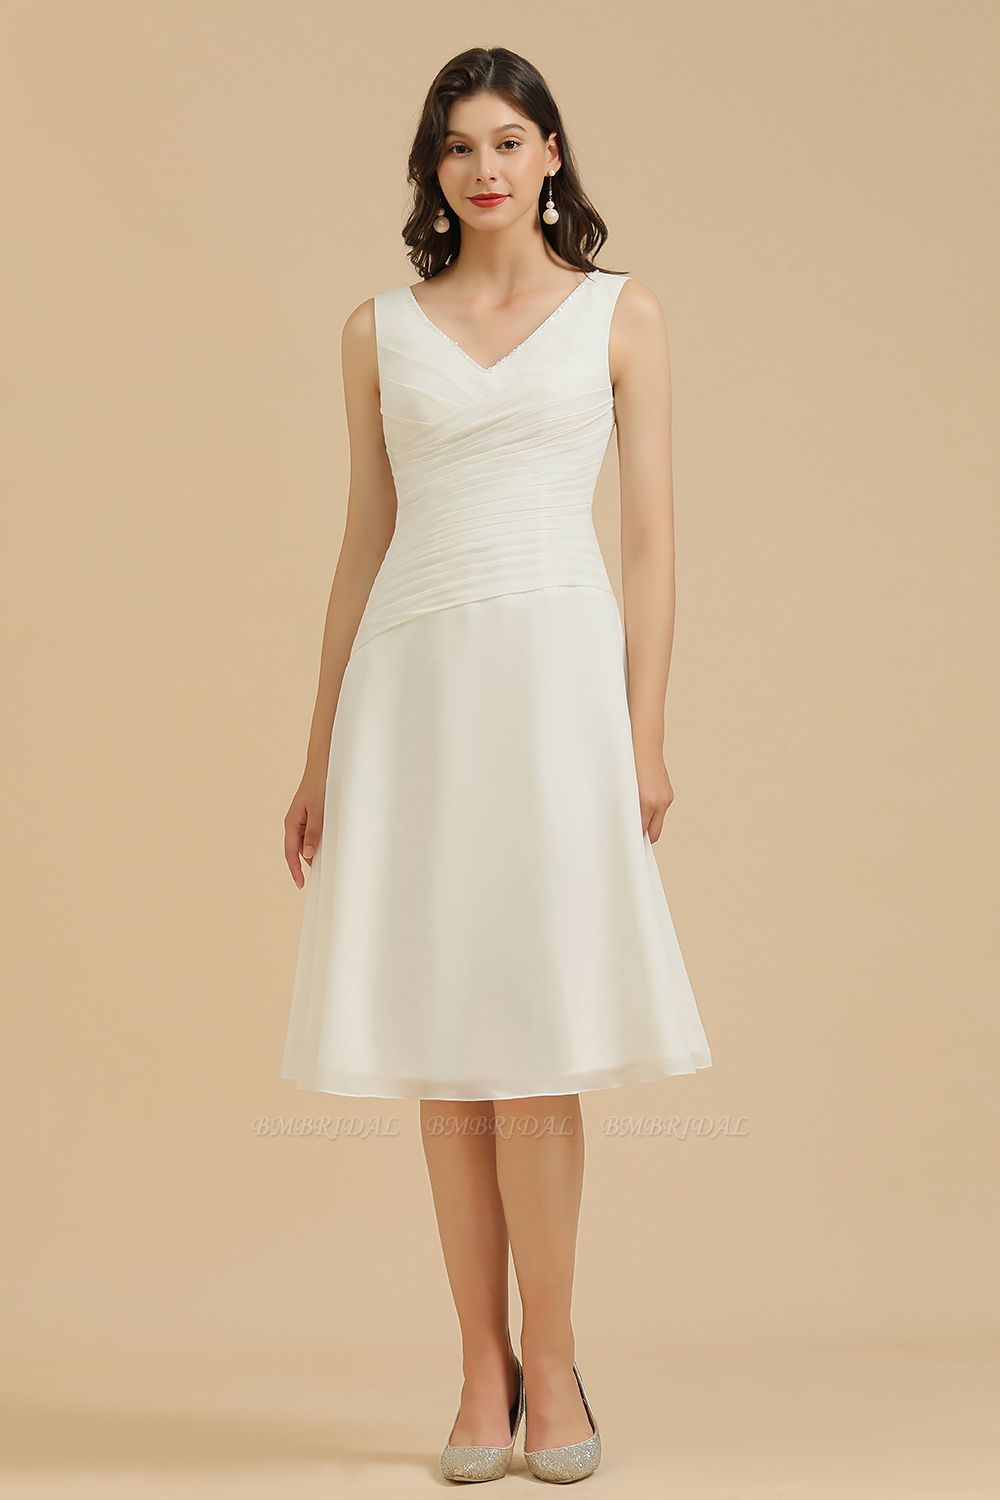 BMbridal V-Neck Knee-length Chiffon Bridesmaid Dress online